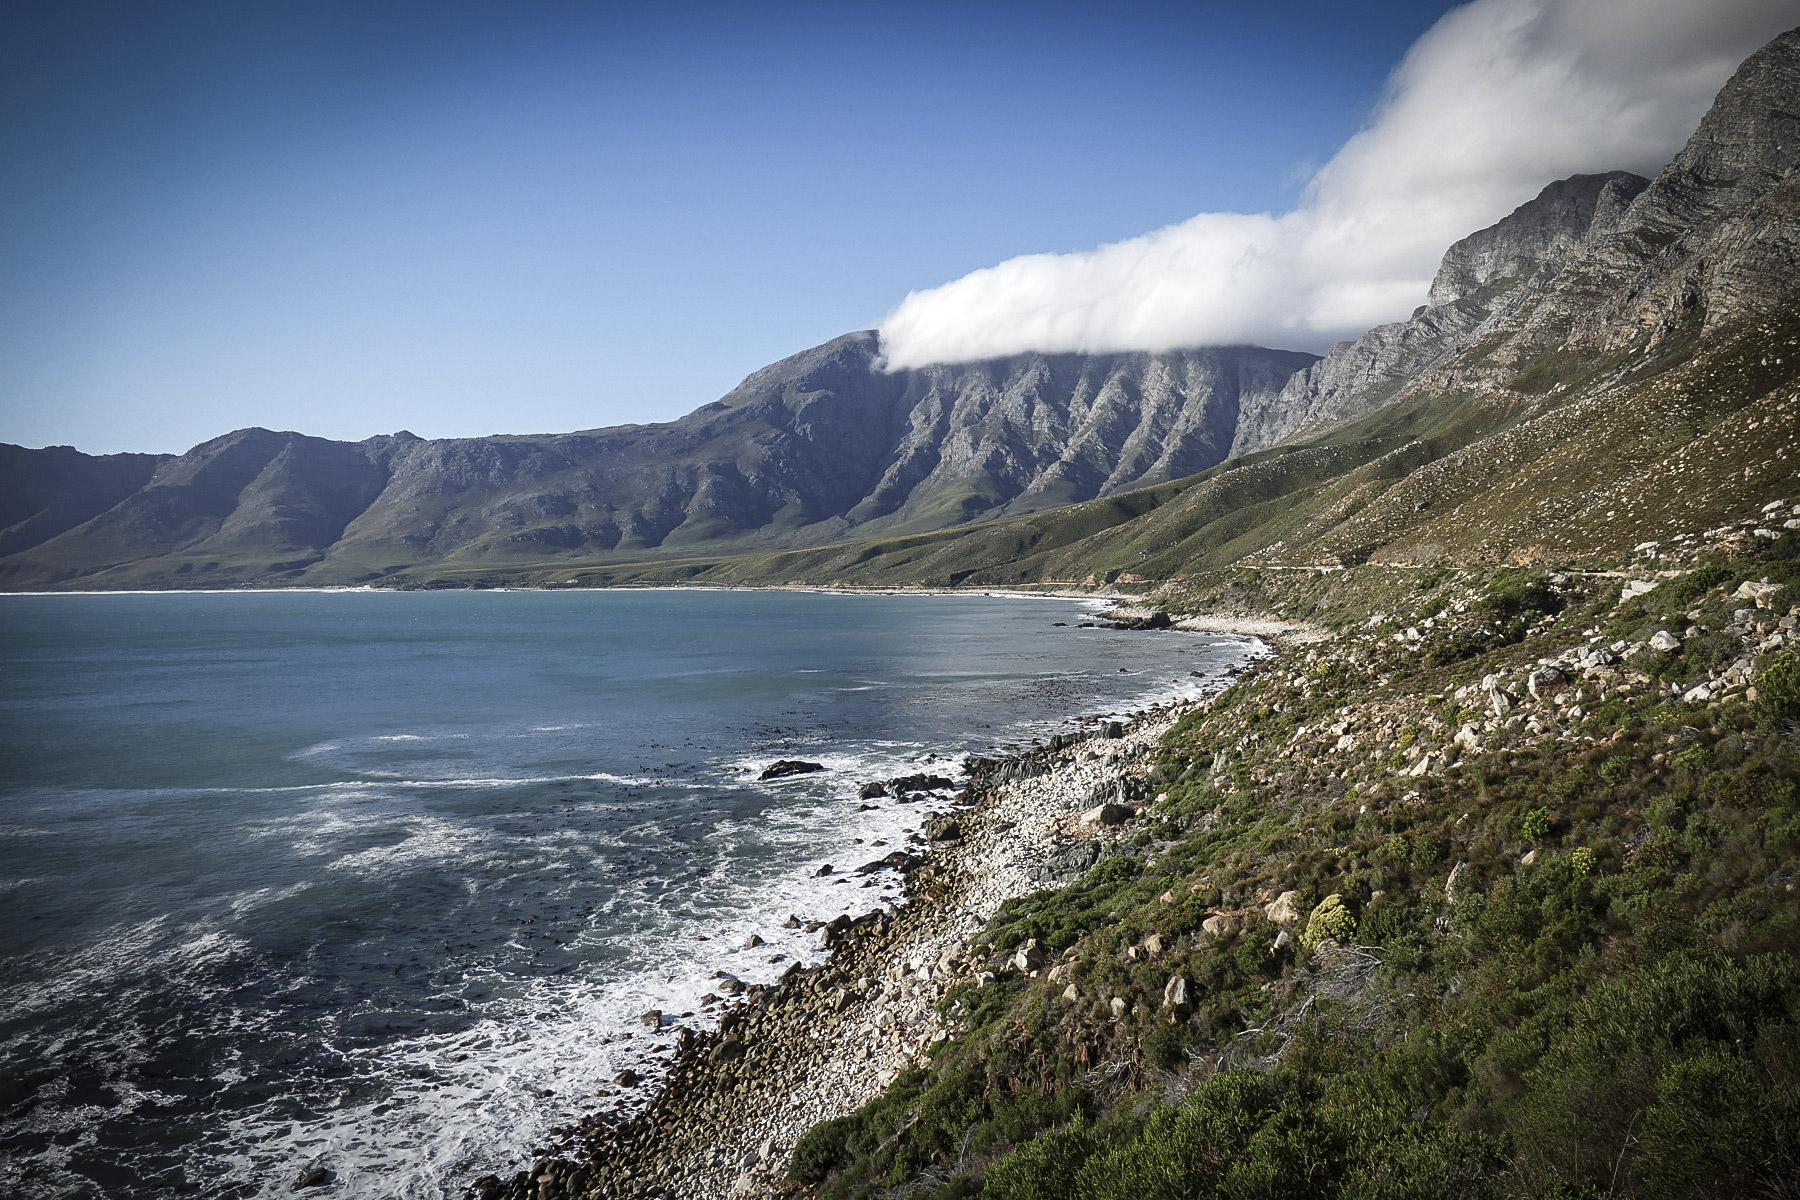 A view of False Bay, one of Cape Town's most scenic spots. Noah Strycker